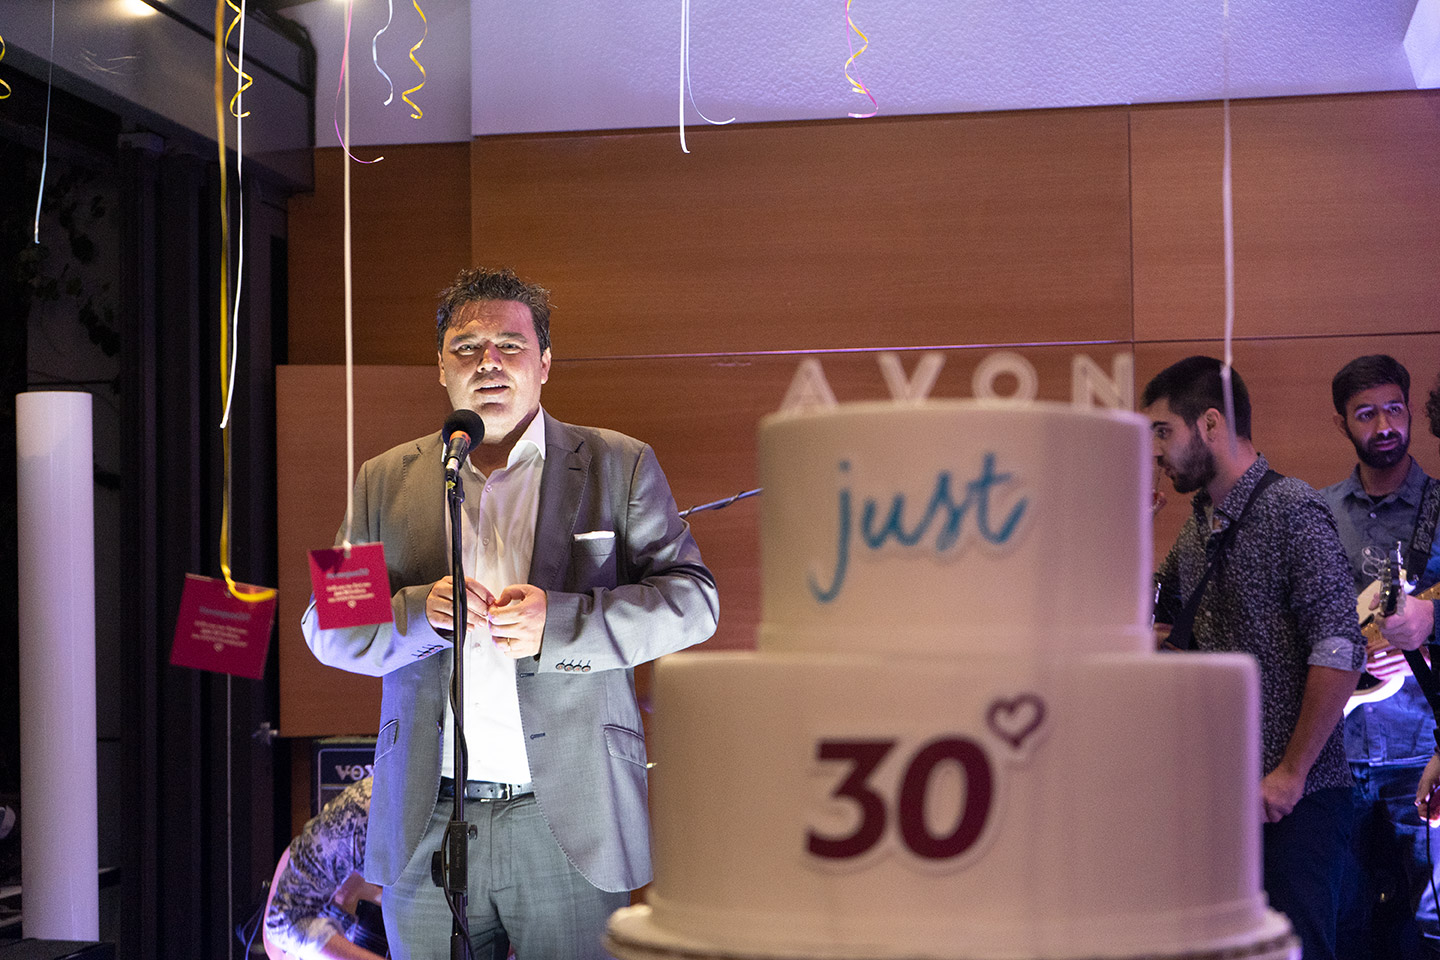 Avon Just 30 Party 3